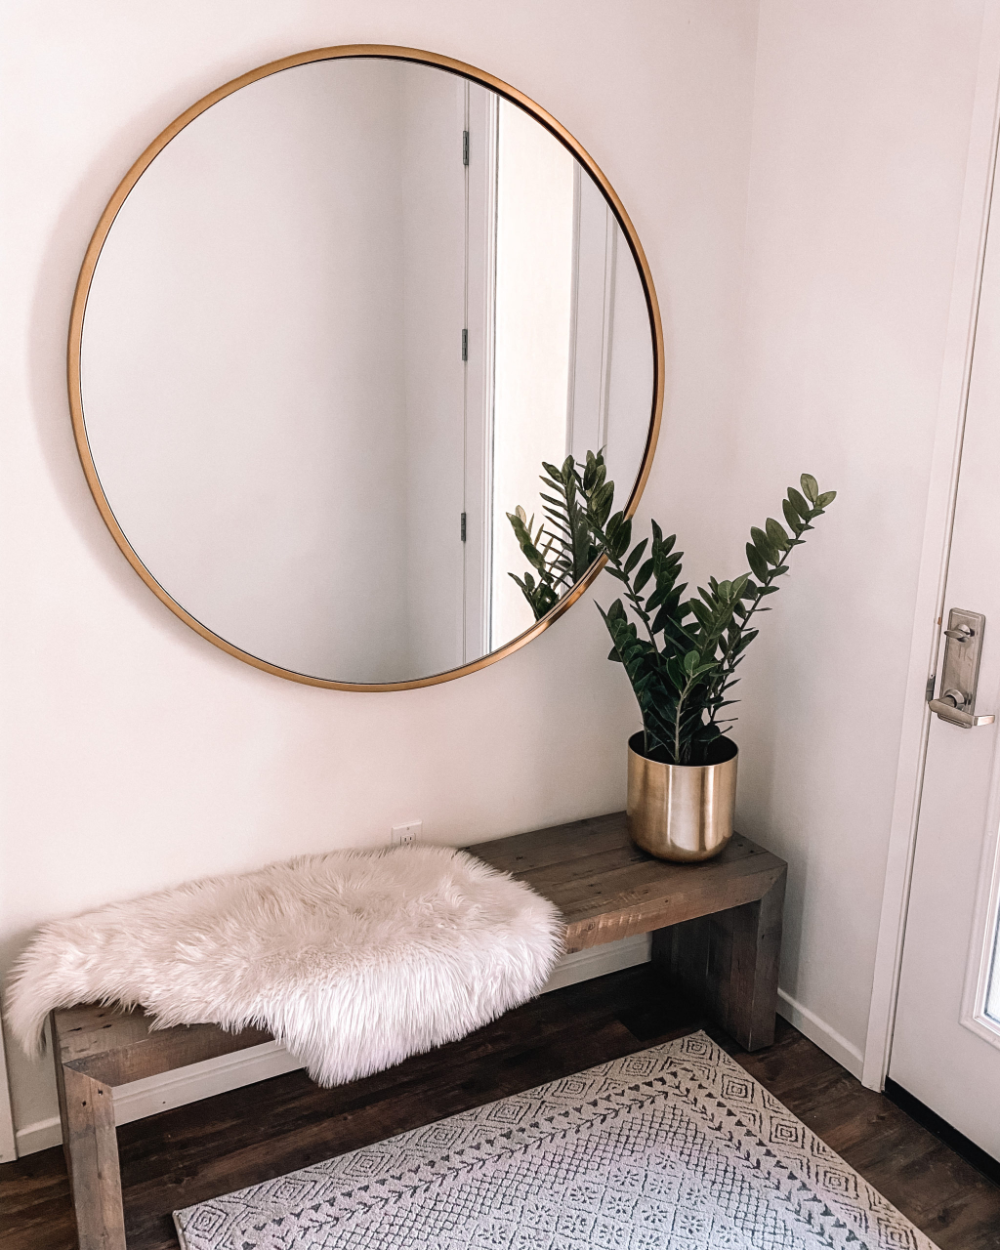 Photo of House Reveal: My Current Home Decor | Fashion Jackson